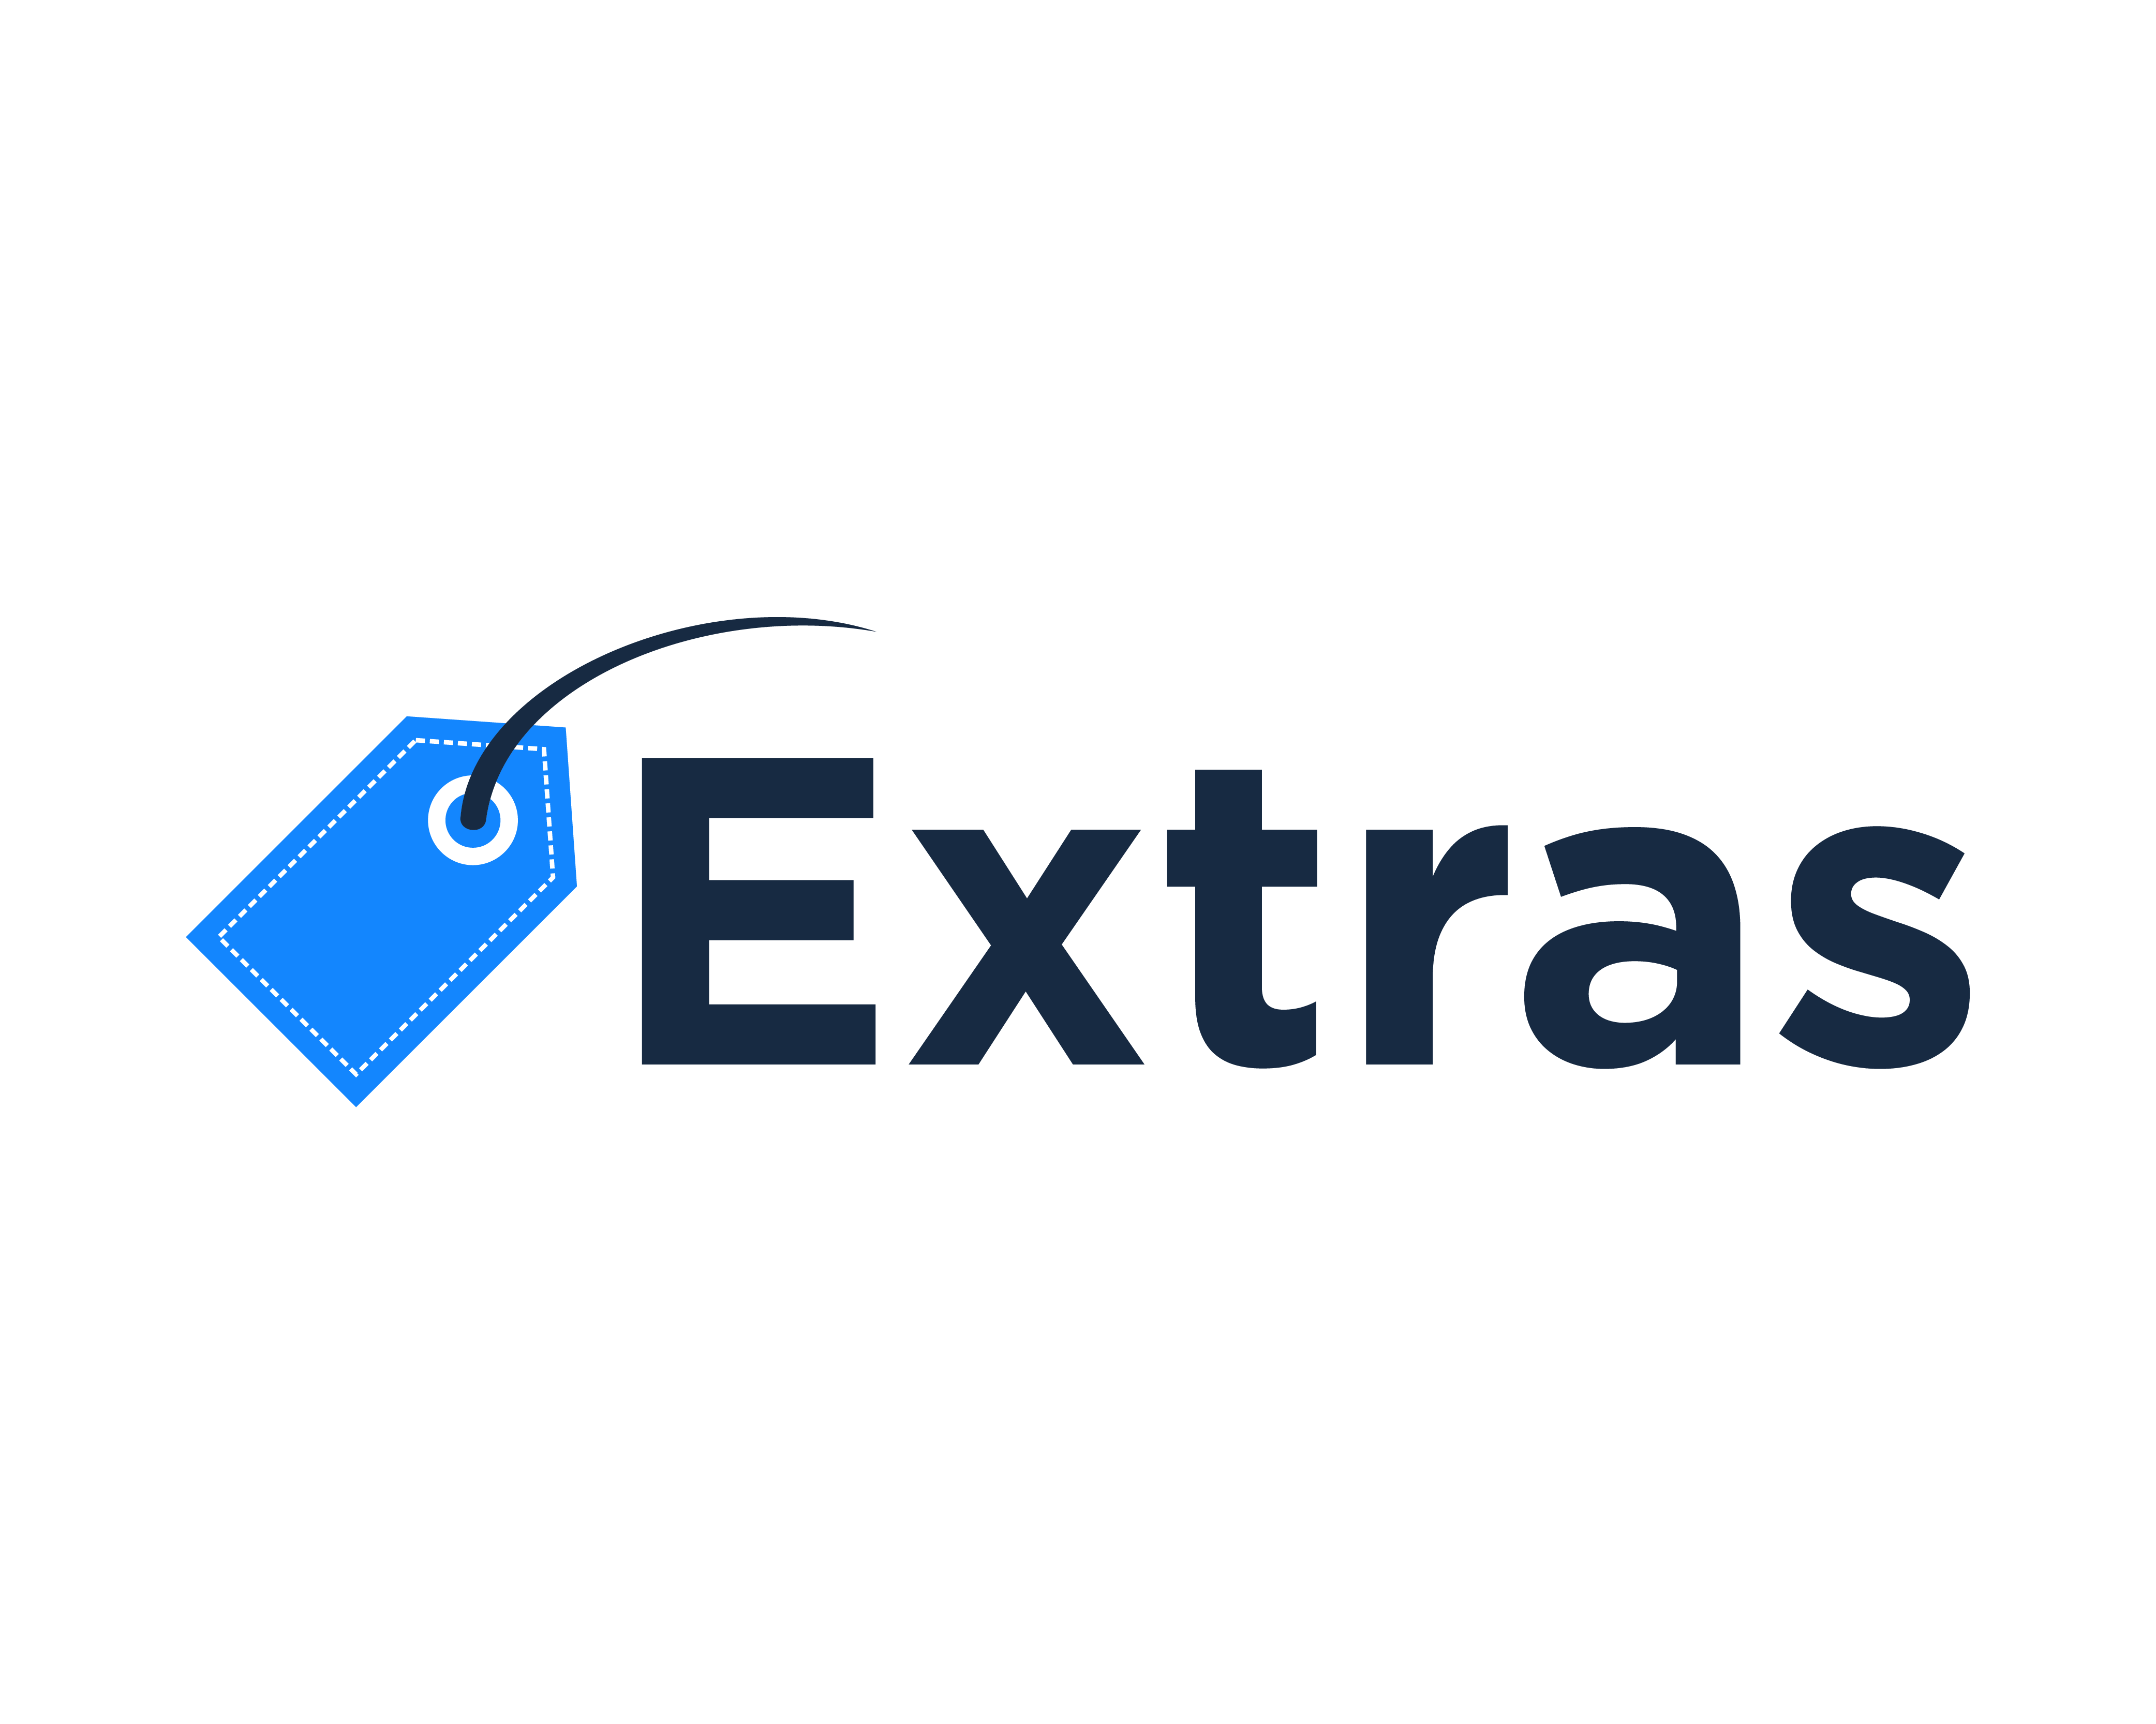 Extras - Personal Finance & Money Saving